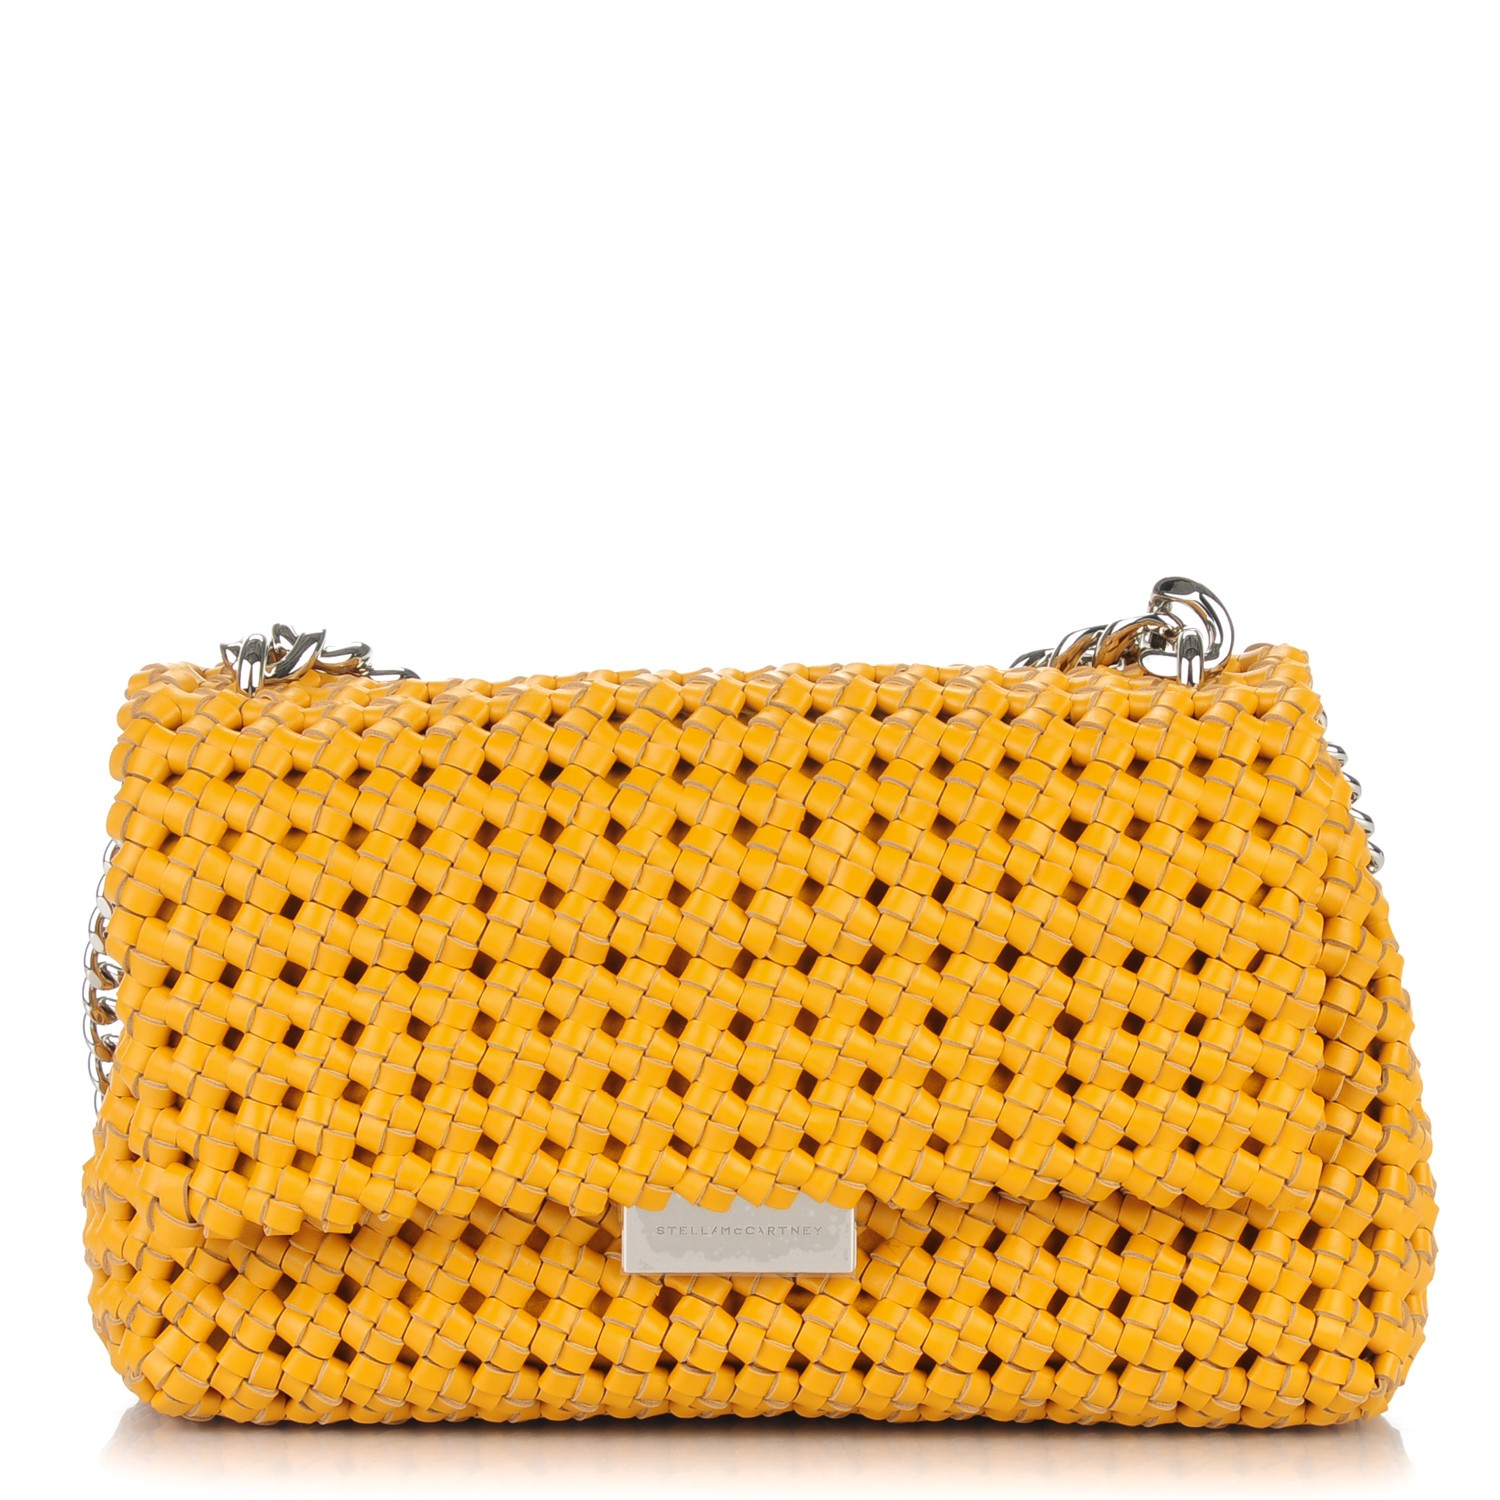 Stella Mccartney Faux Leather Woven Bex Shoulder Bag Yellow